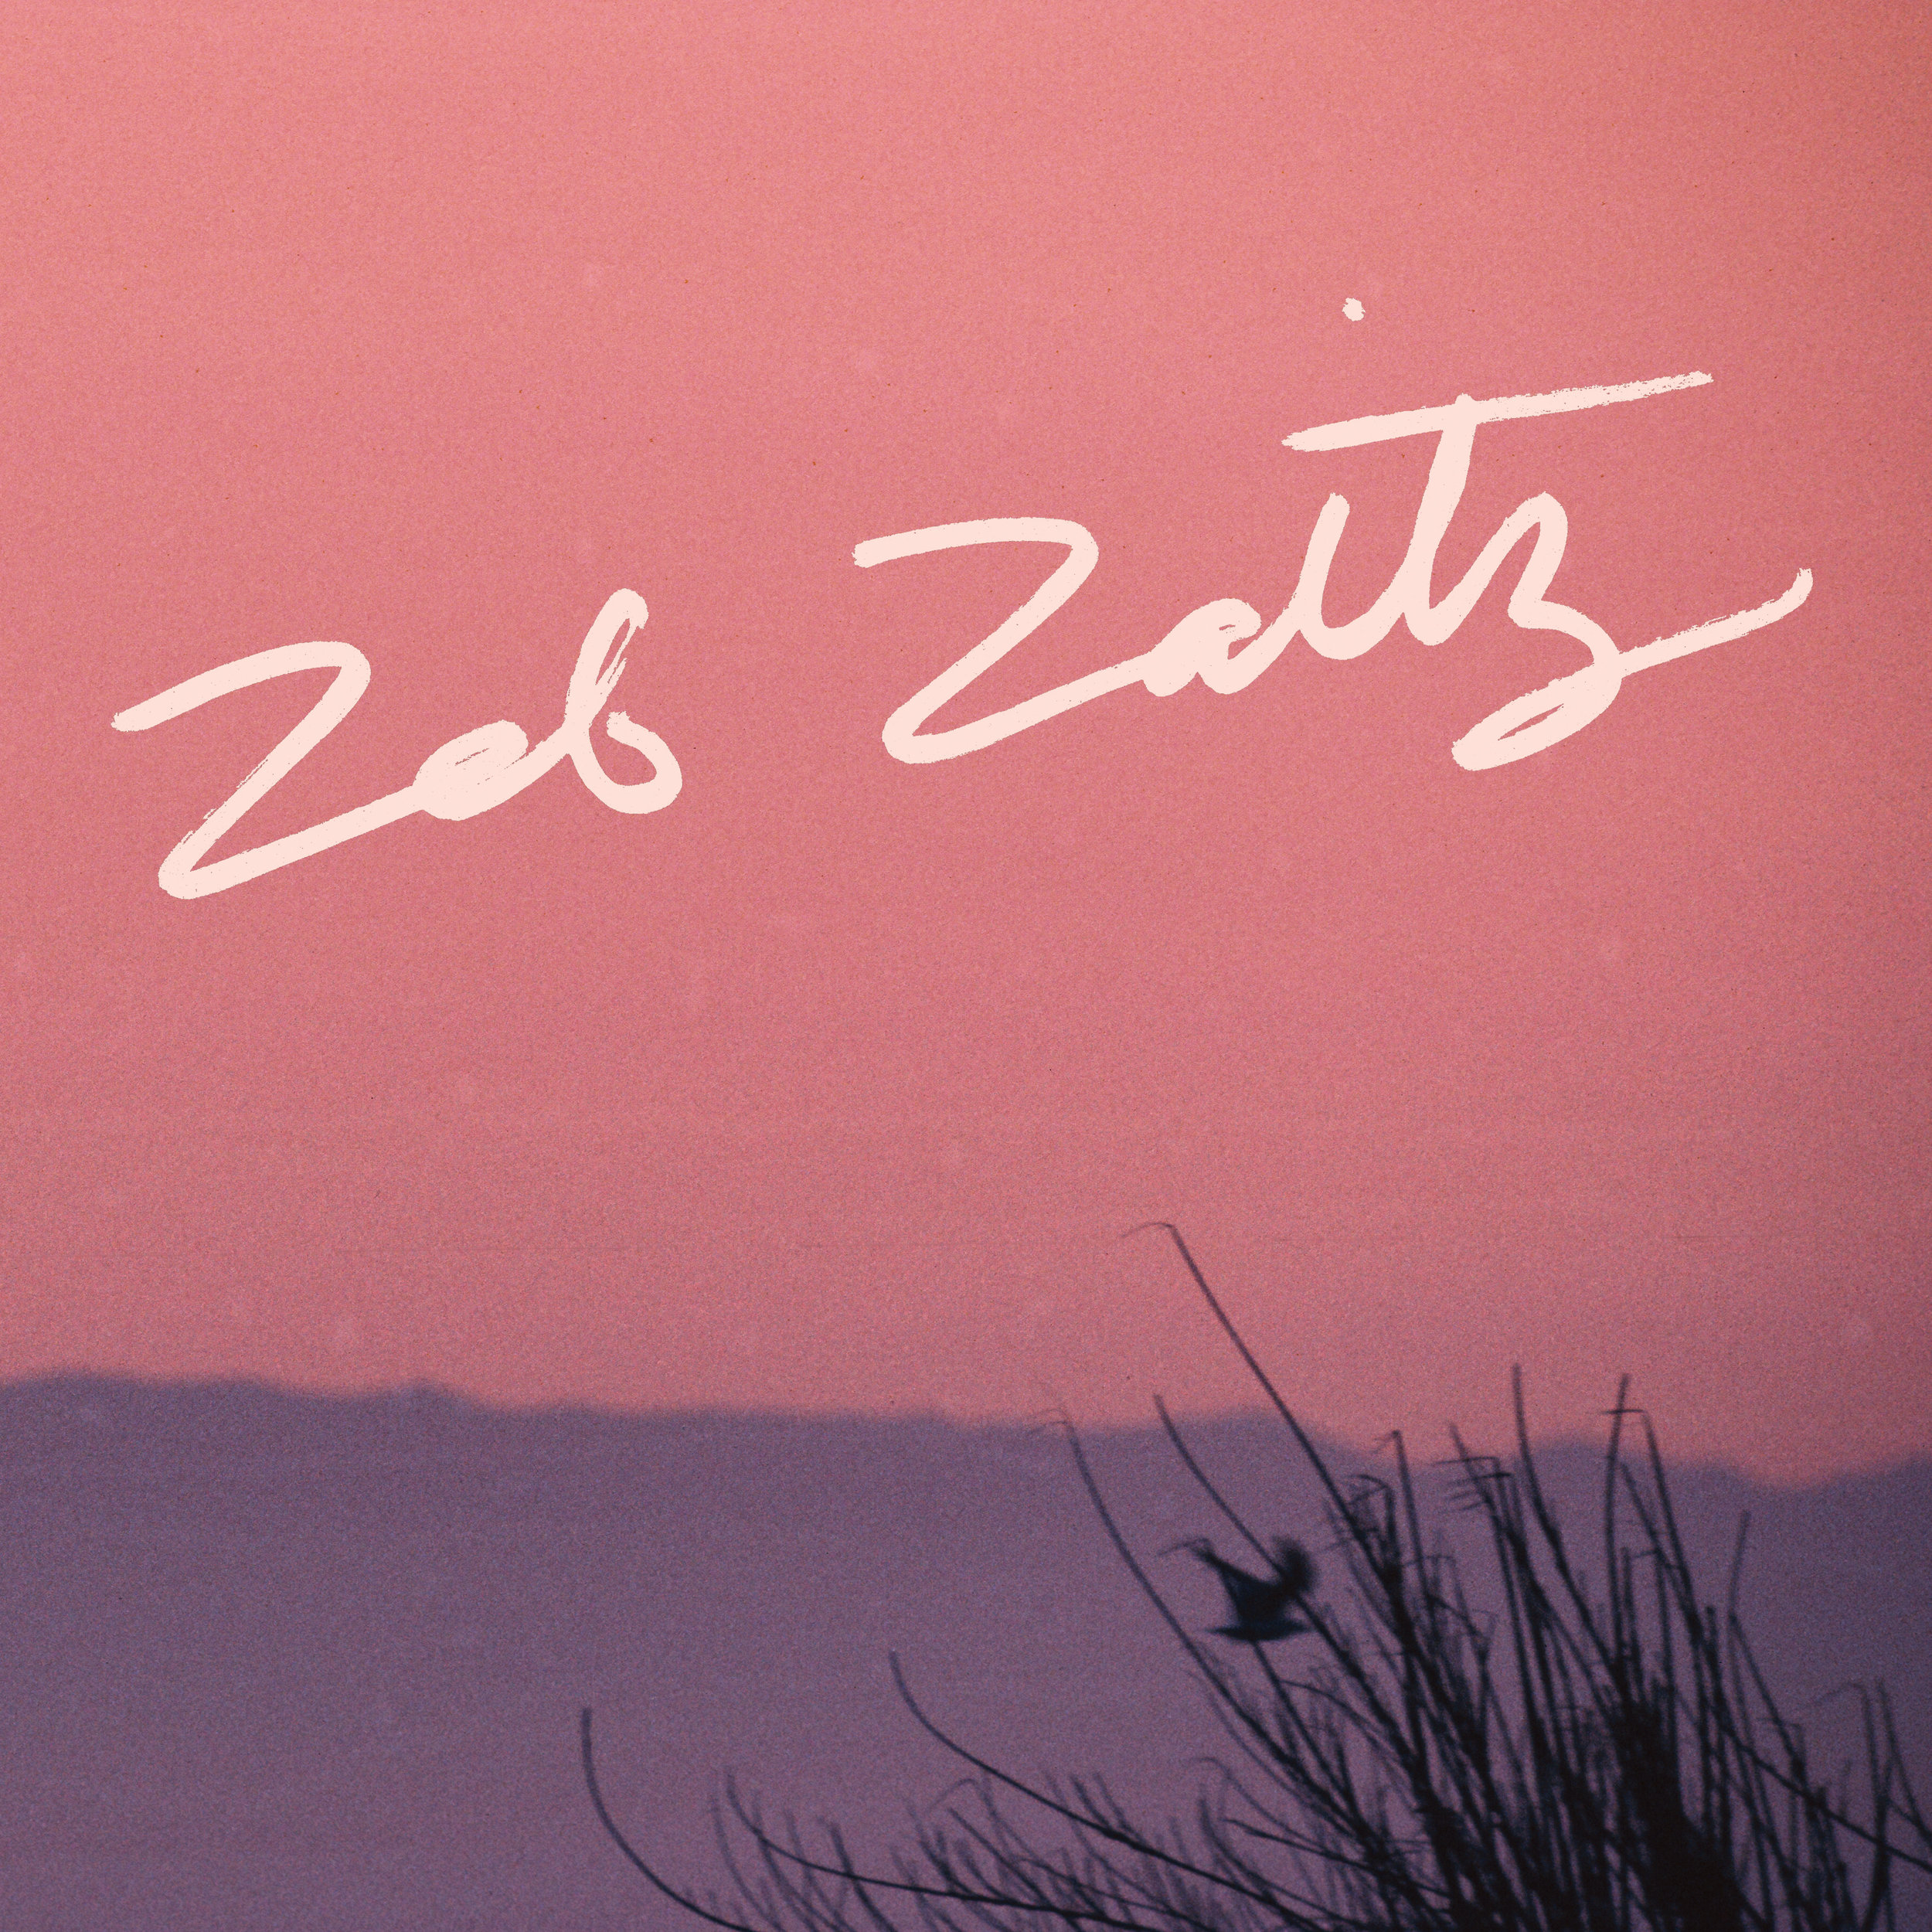 """Zeb Zaitz"" (self-titled)"